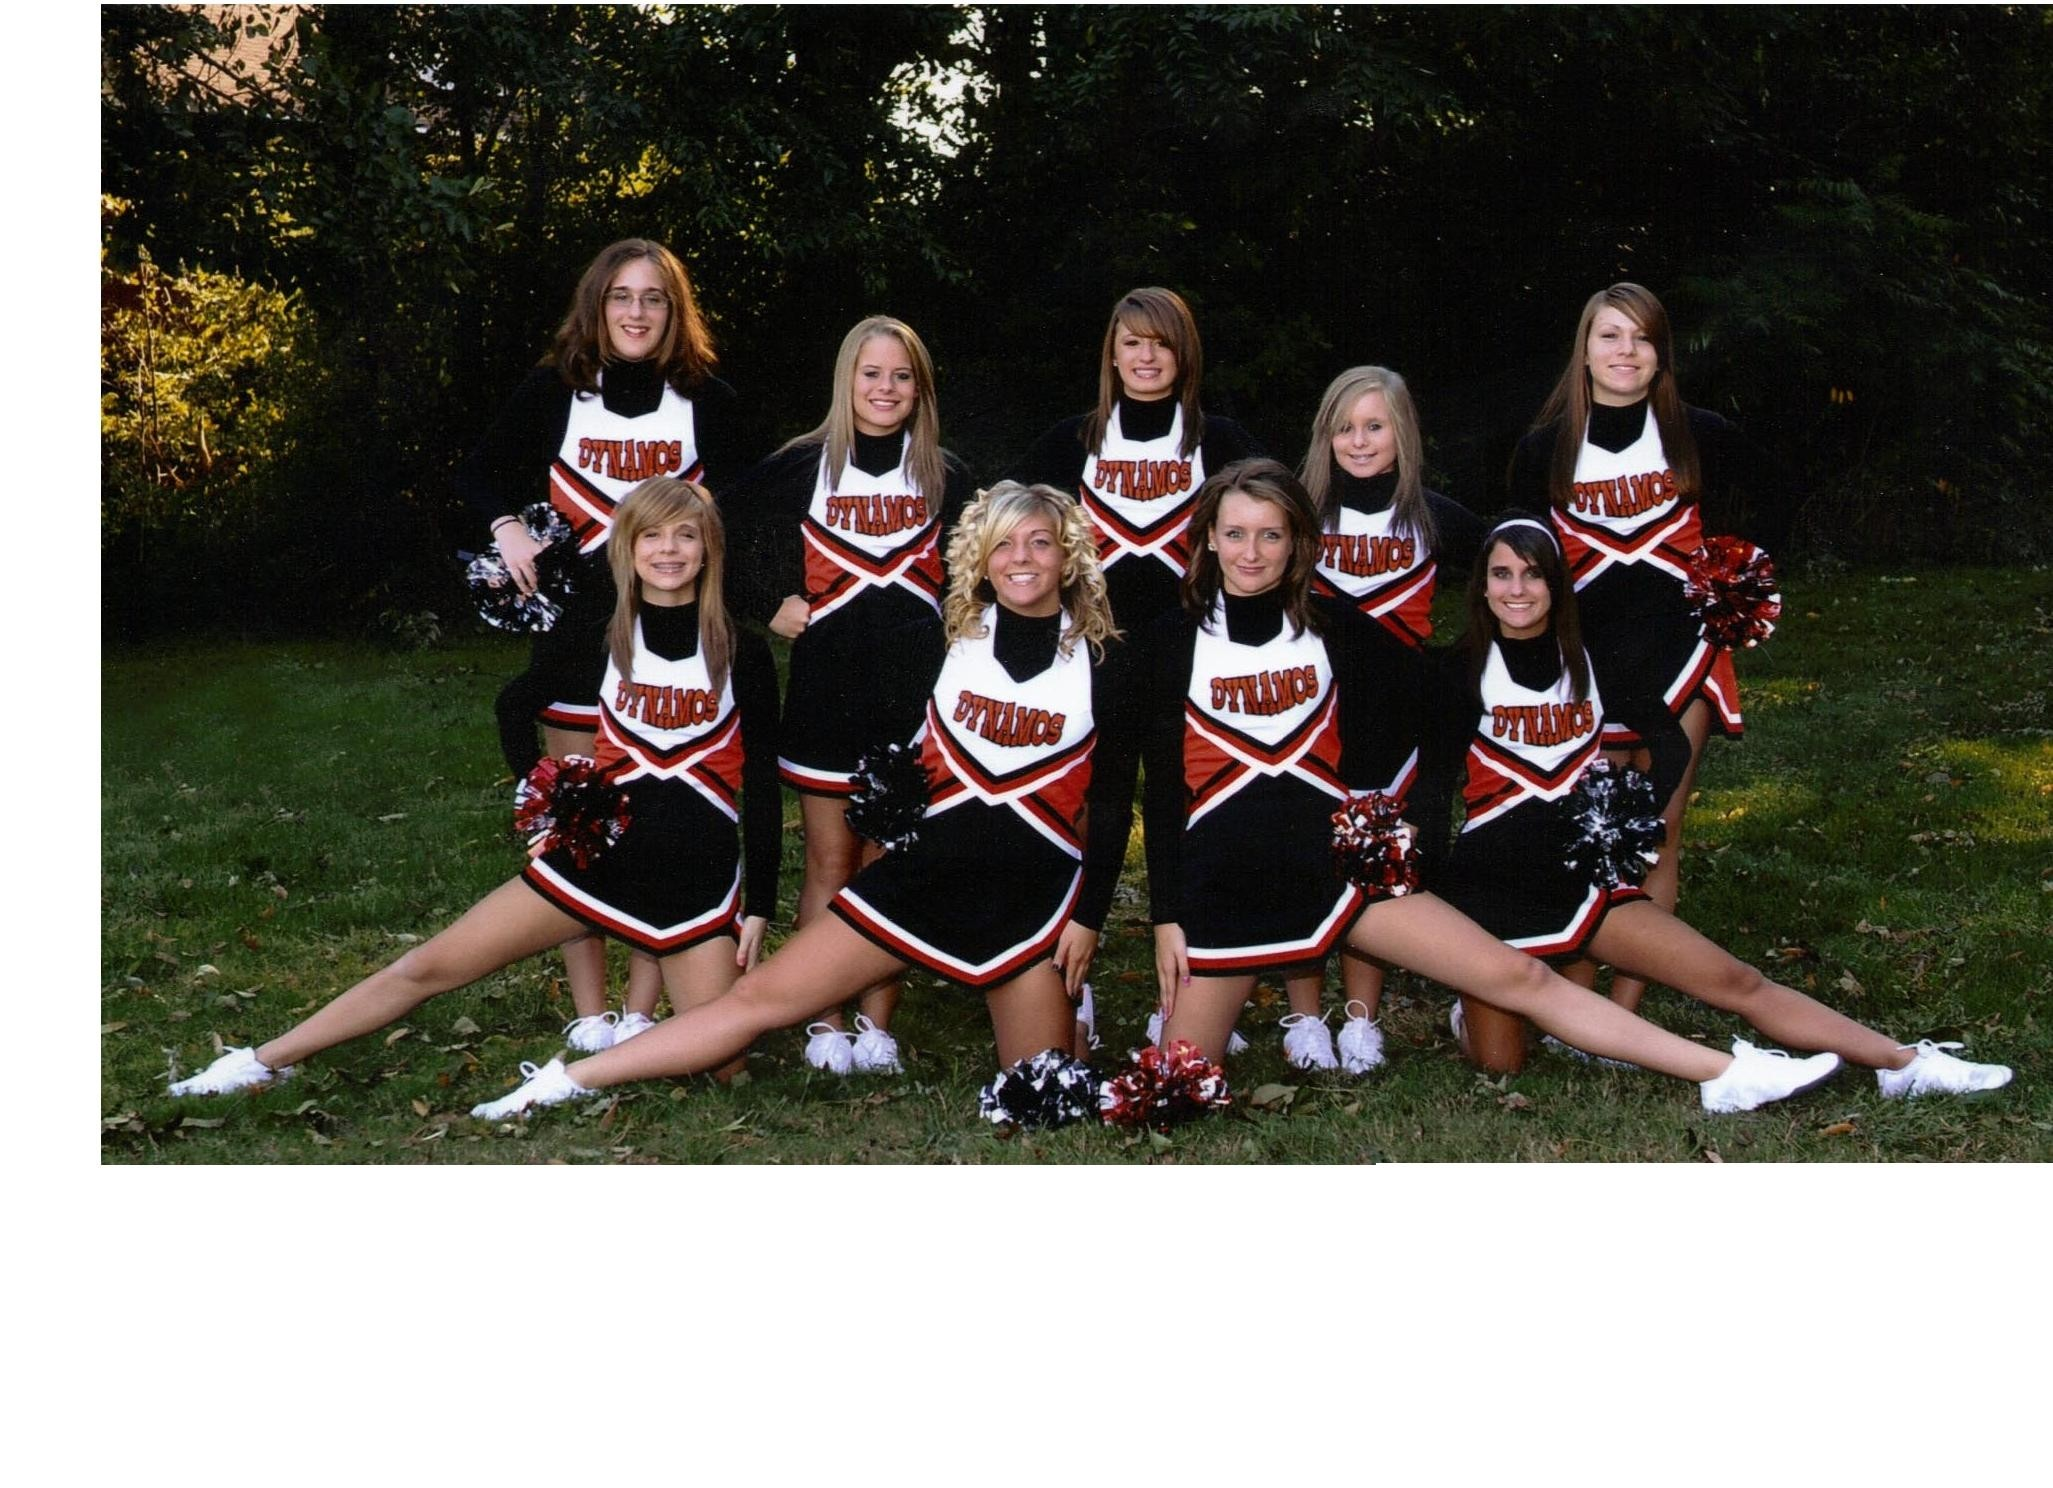 2053x1488 cheer team pictures | Springdale cheerleaders are taking over the school  with their pride .